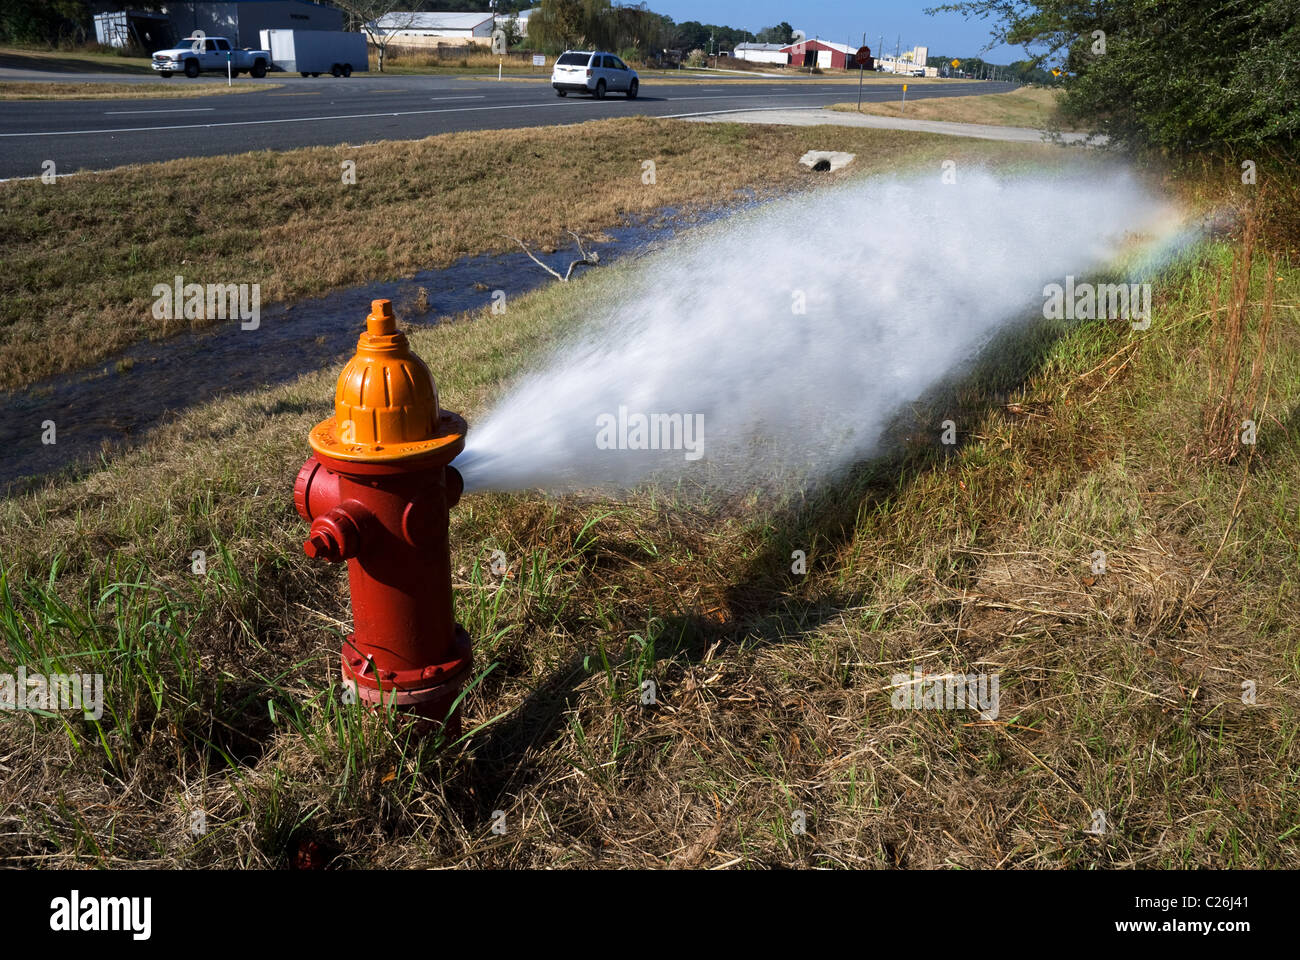 fire hydrant gushes water while undergoing maintenance and testing - Stock Image